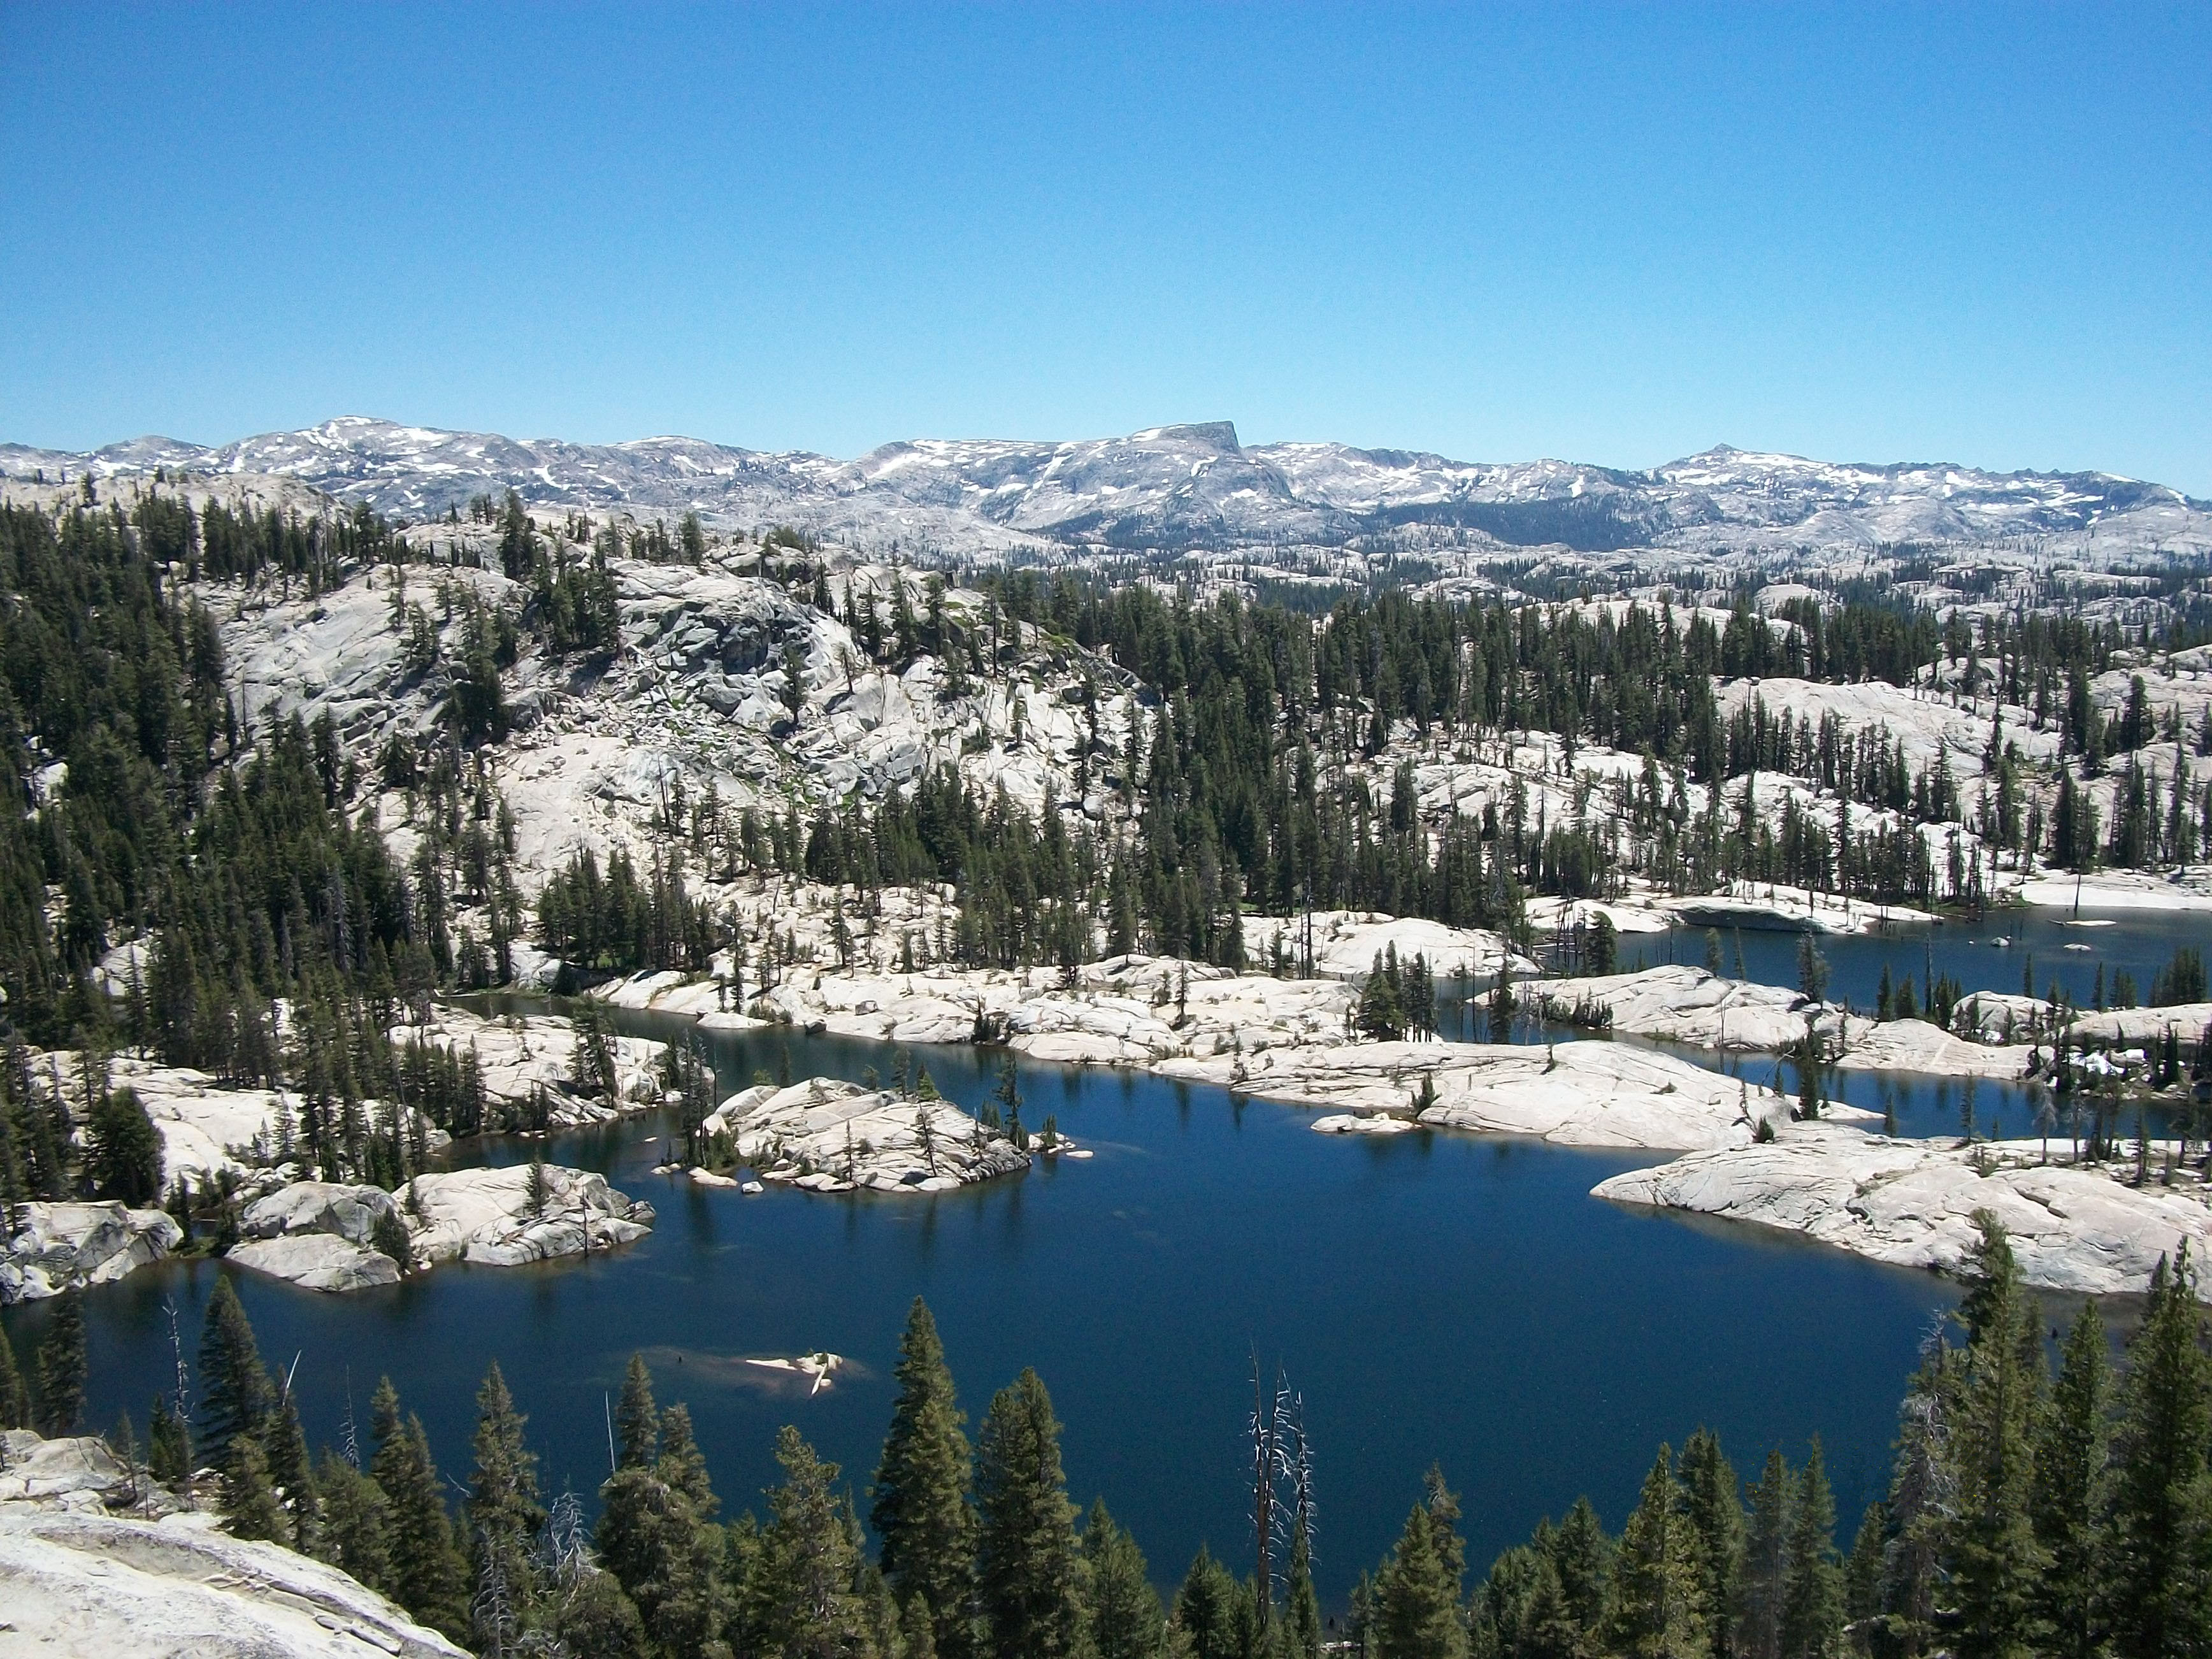 A snowy view of Upper Bucks Lake which is a scenic granite lake surrounded by forest.